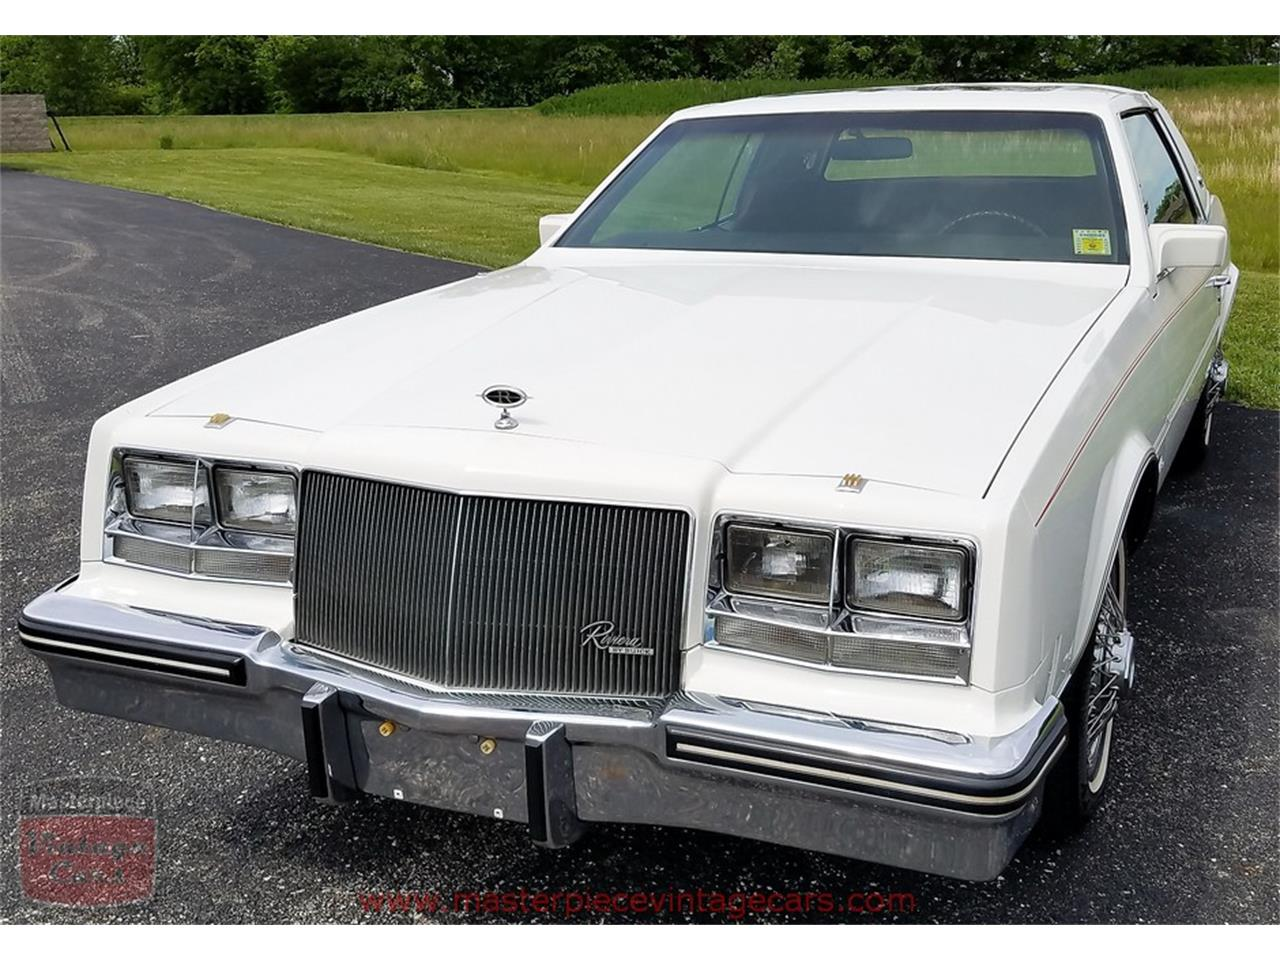 Large Picture of '85 Buick Riviera located in Indiana - $8,950.00 Offered by Masterpiece Vintage Cars - L82V